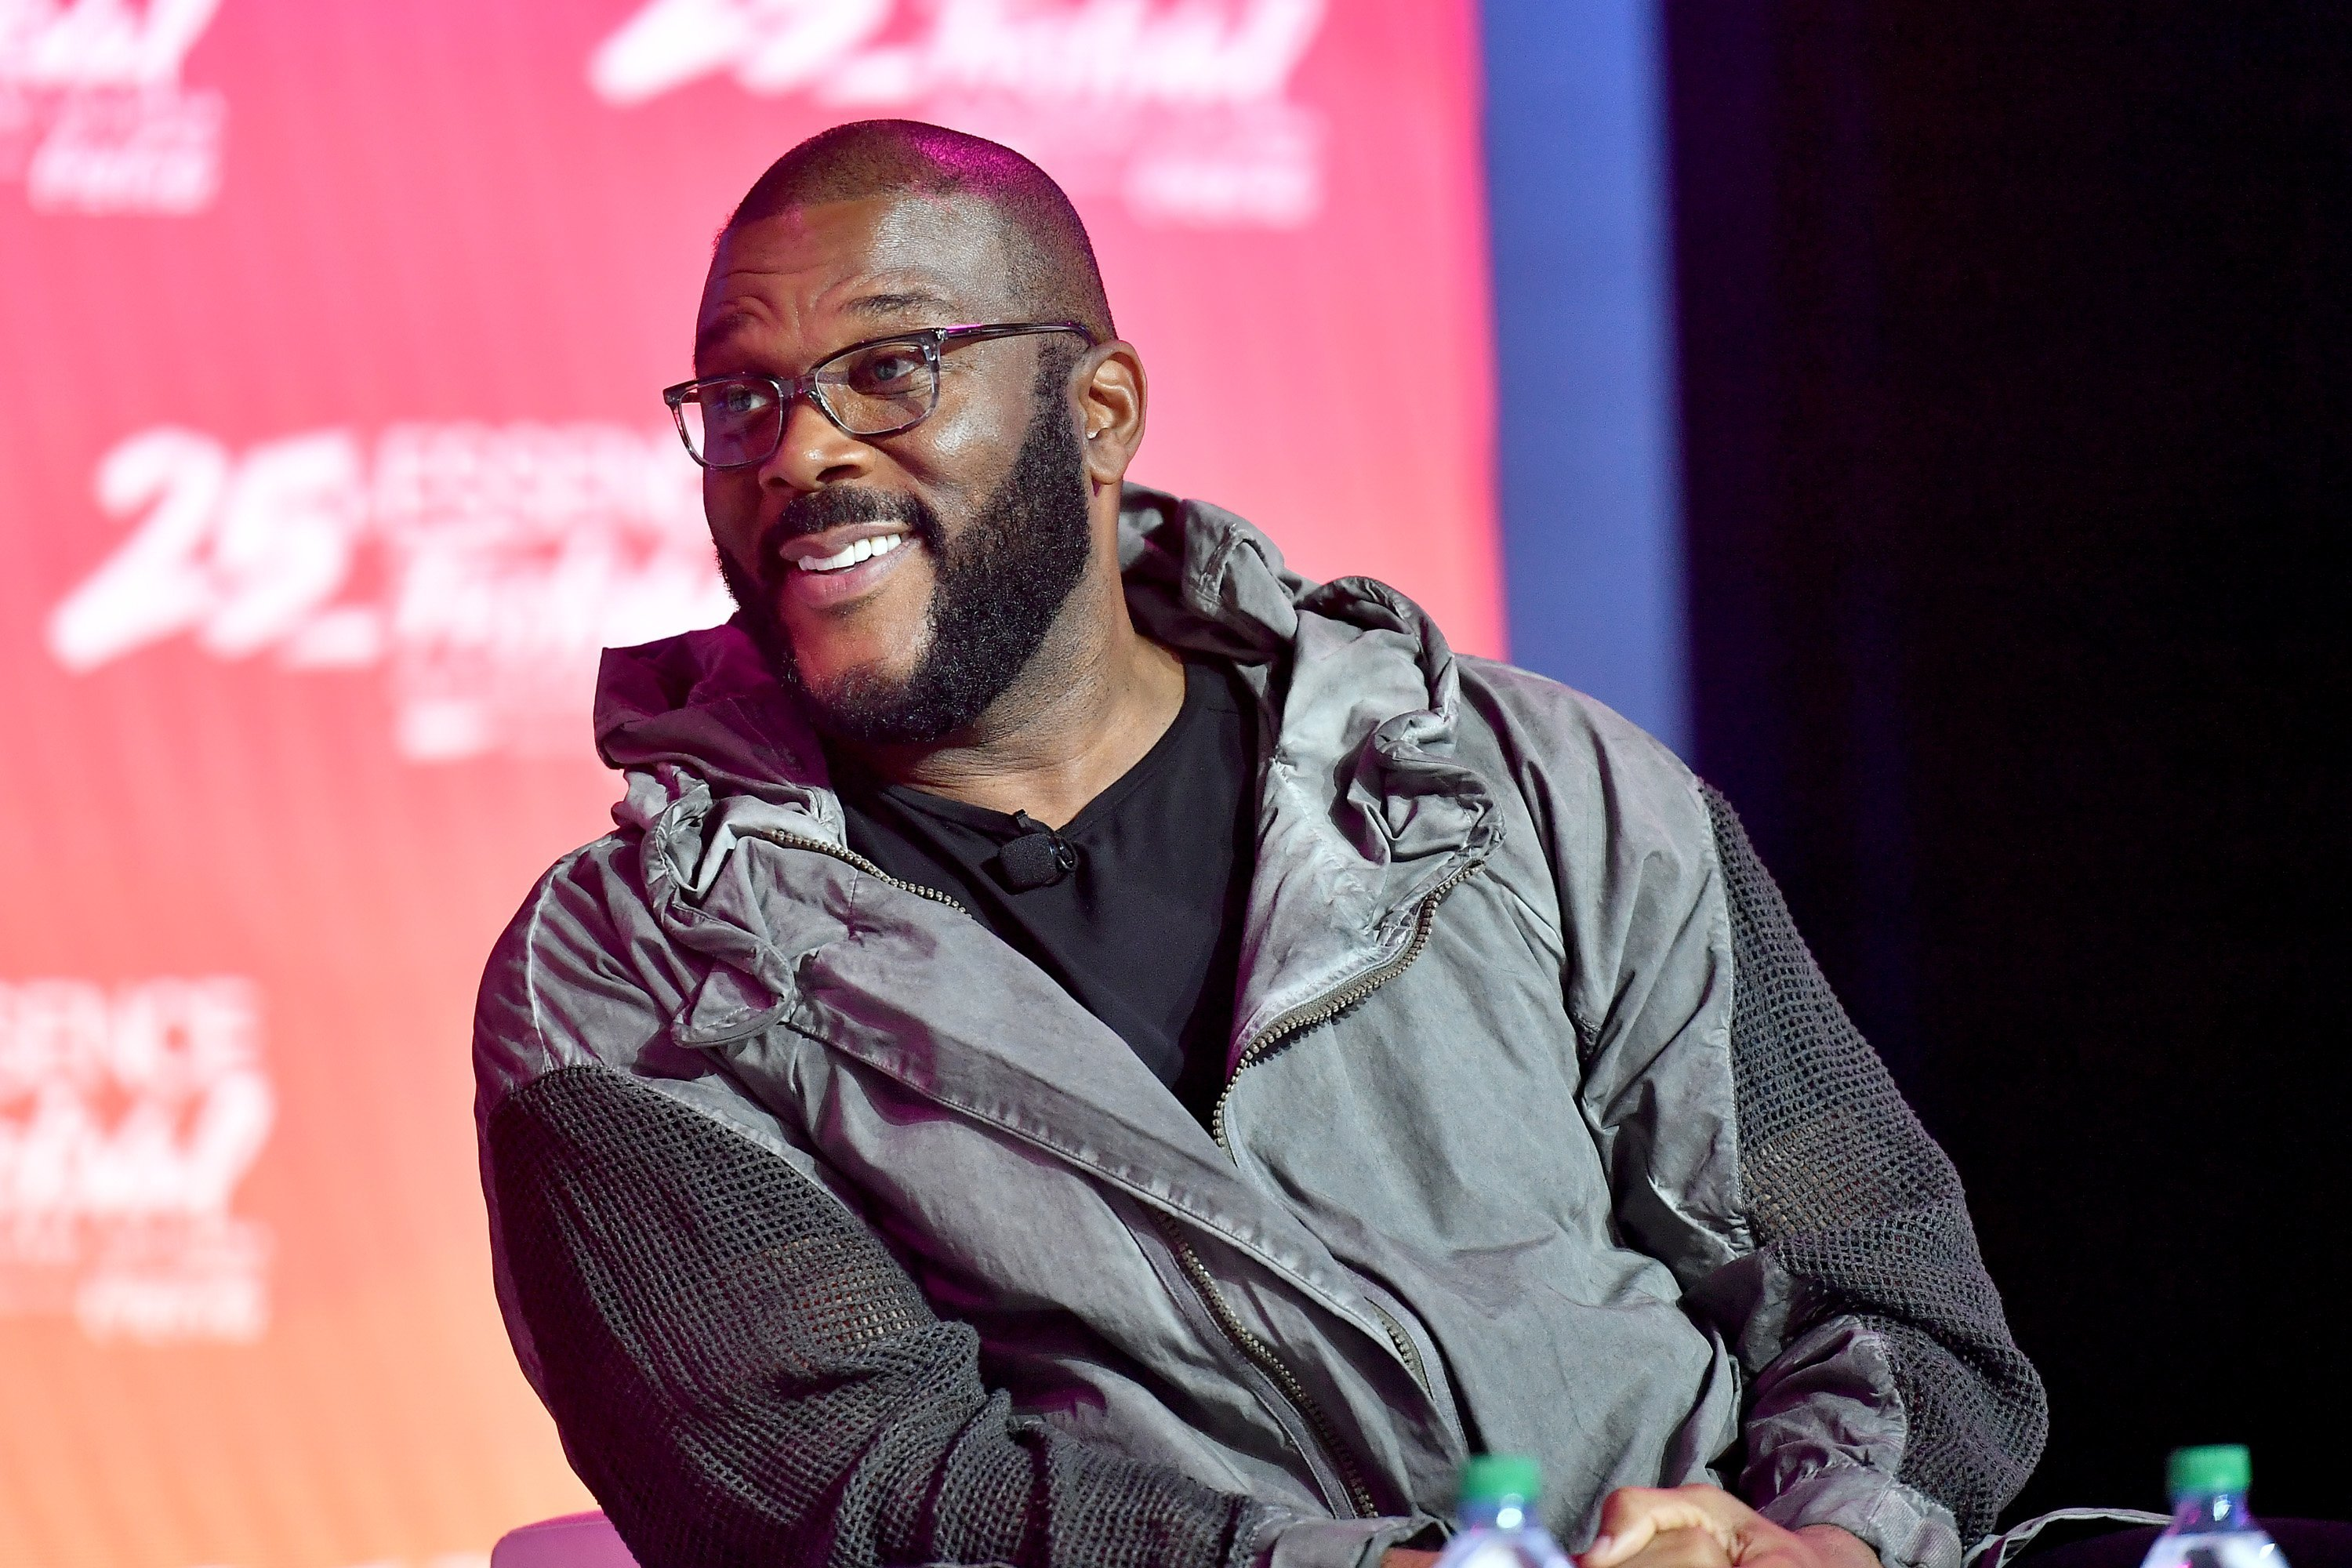 Tyler Perry at the ESSENCE Festival in New Orleans, Louisiana on July 07, 2019 | Photo: Getty Images